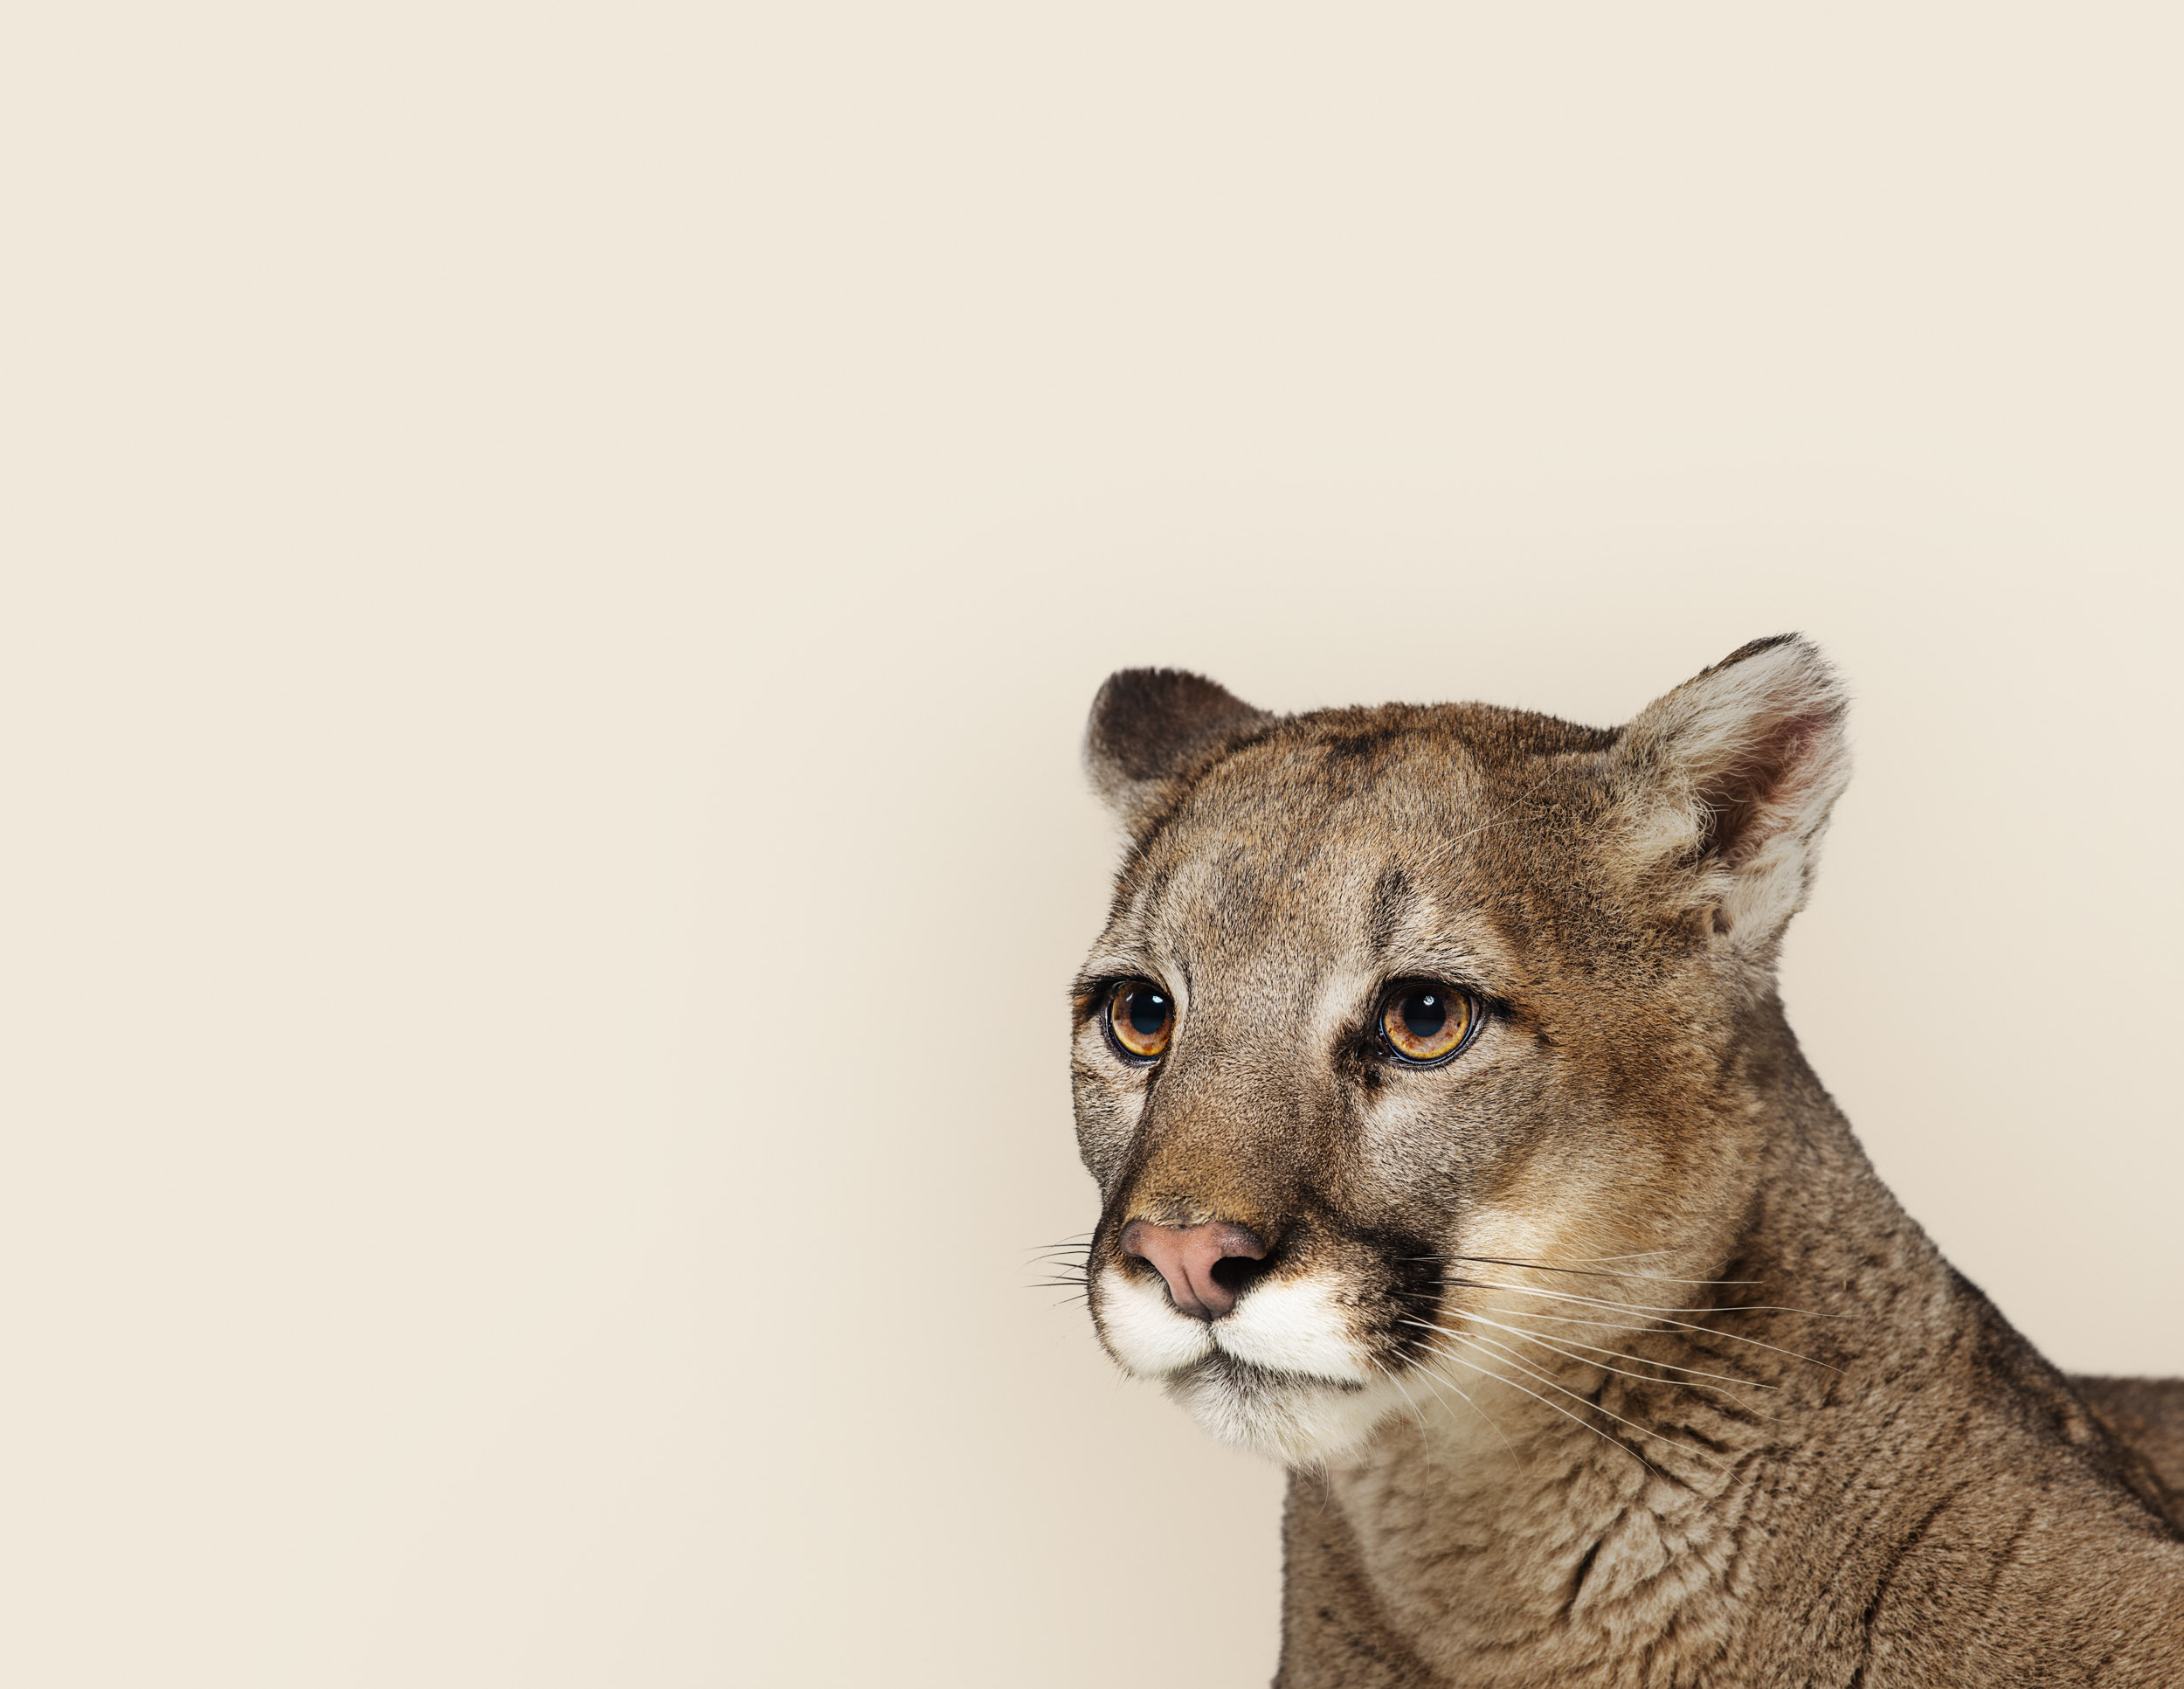 Puma concolor (mountain lion)